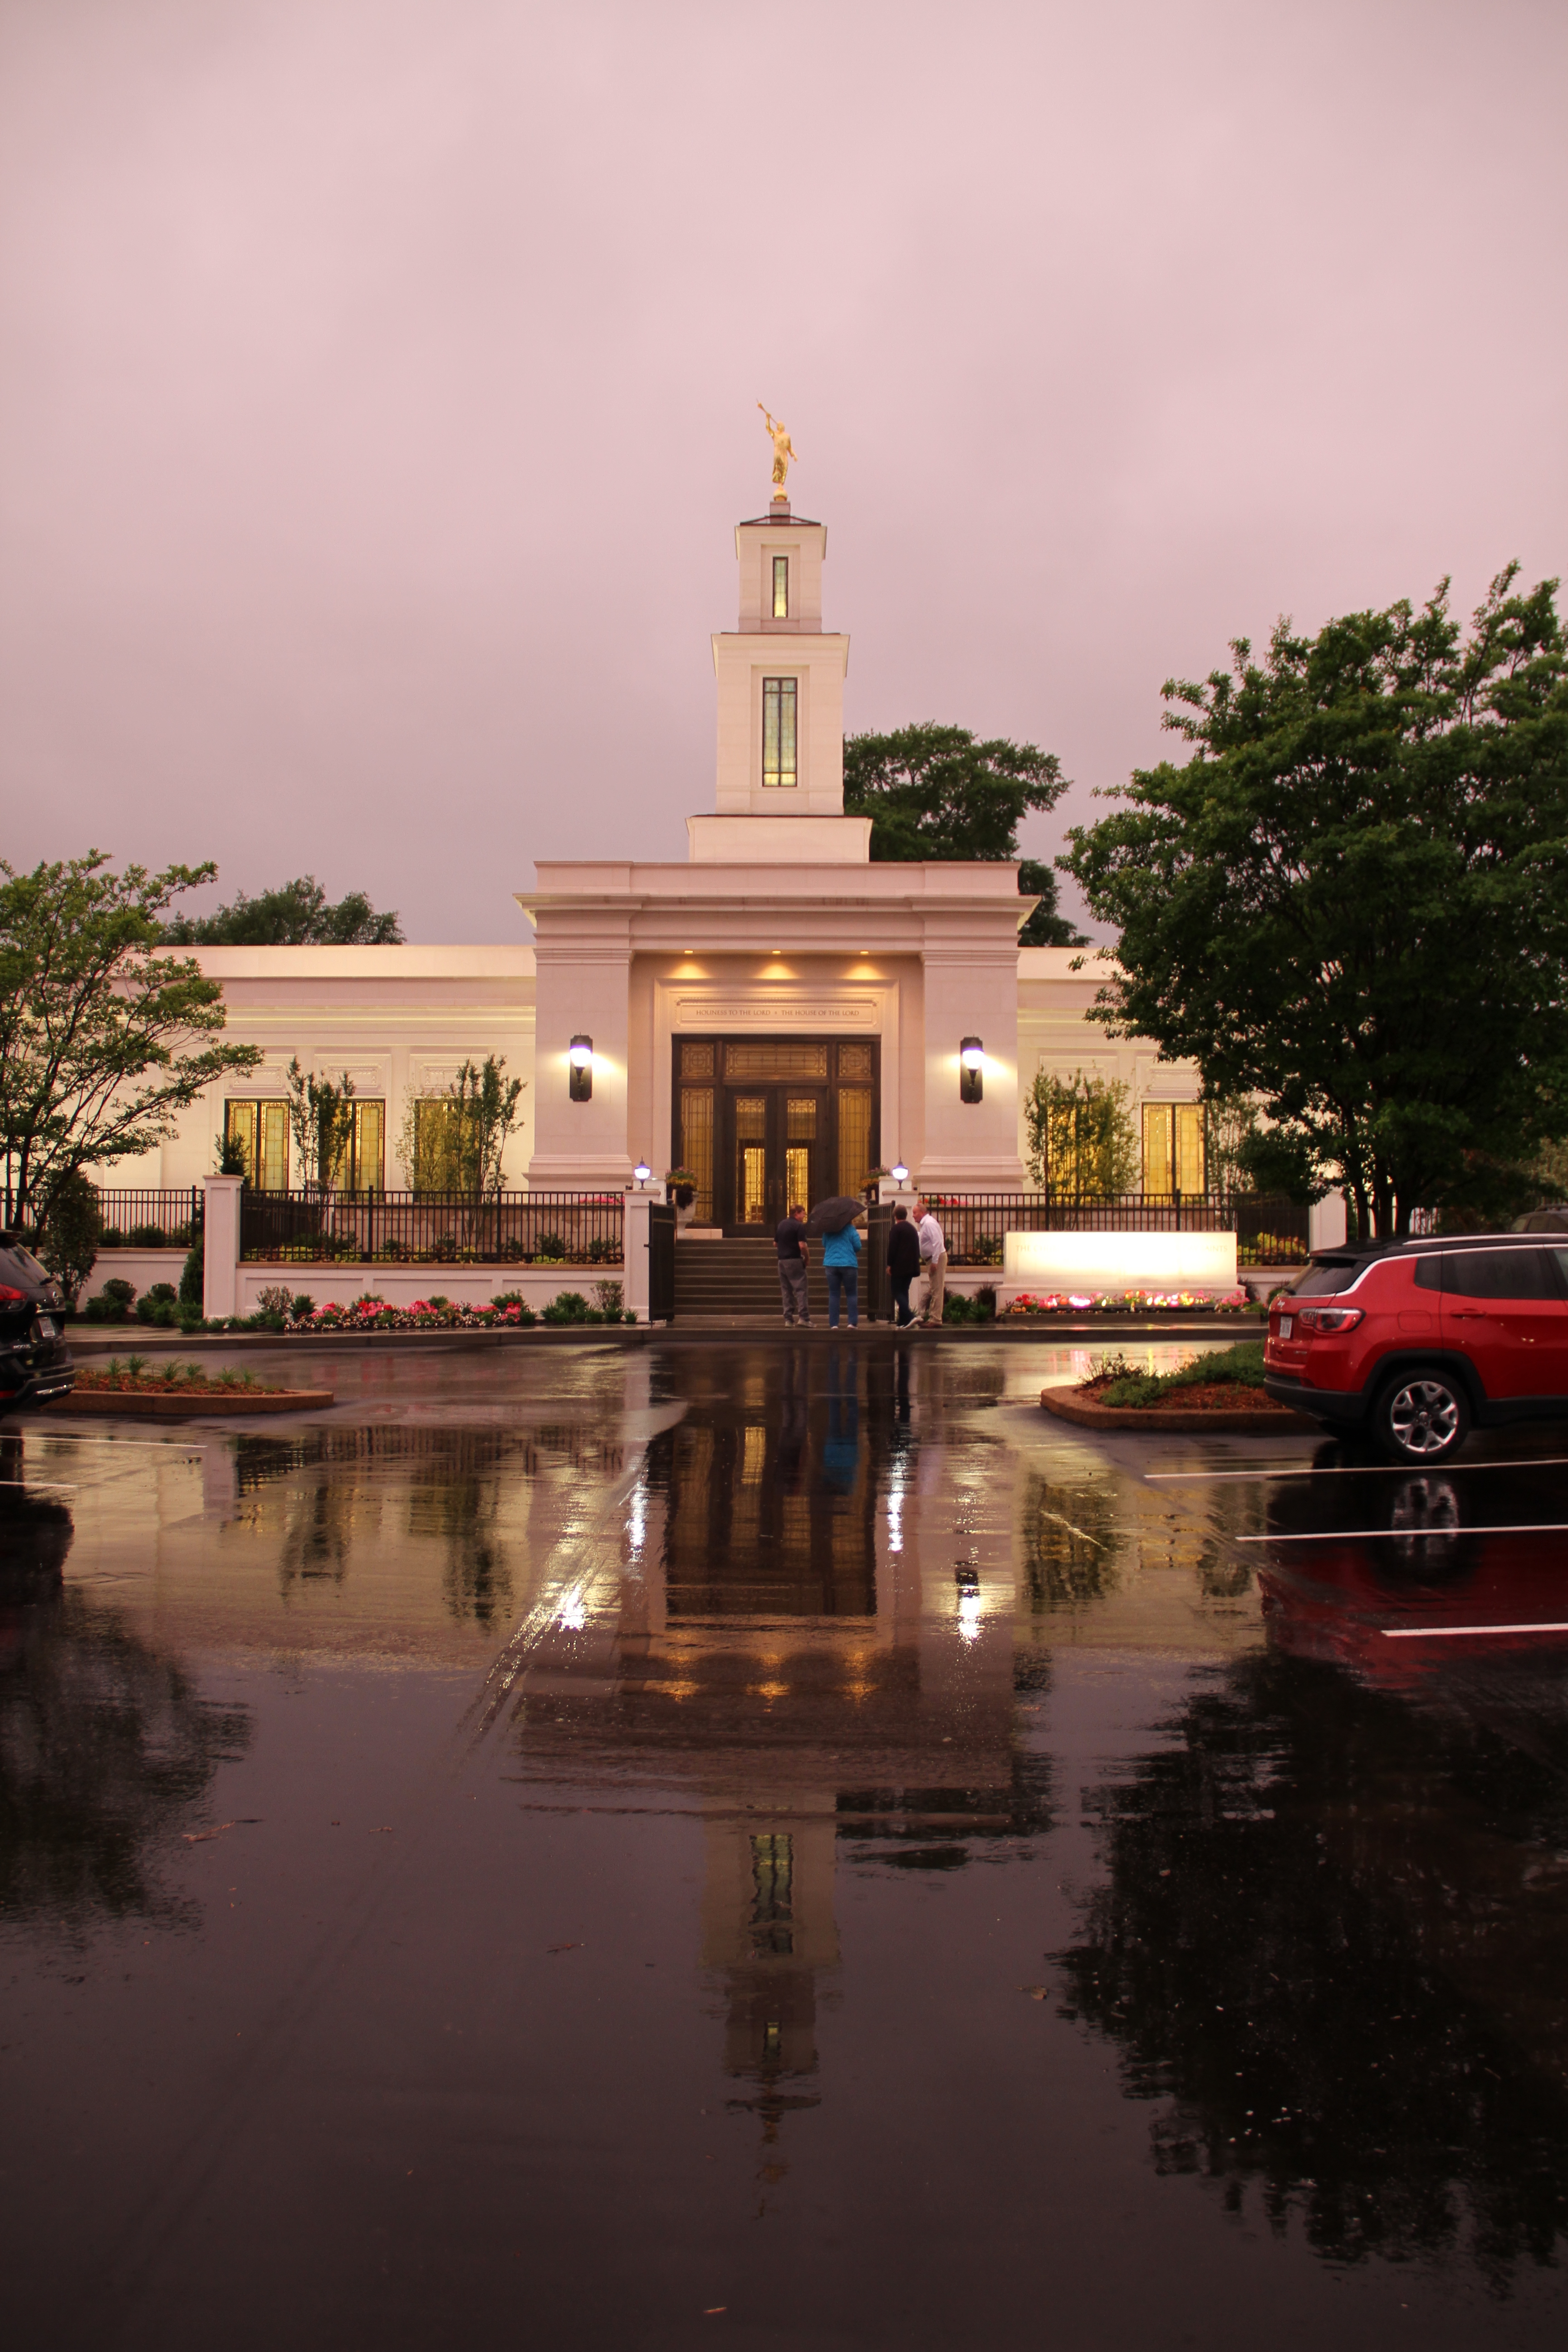 The Memphis Tennessee Temple under rainy skies on May 4, 2019.